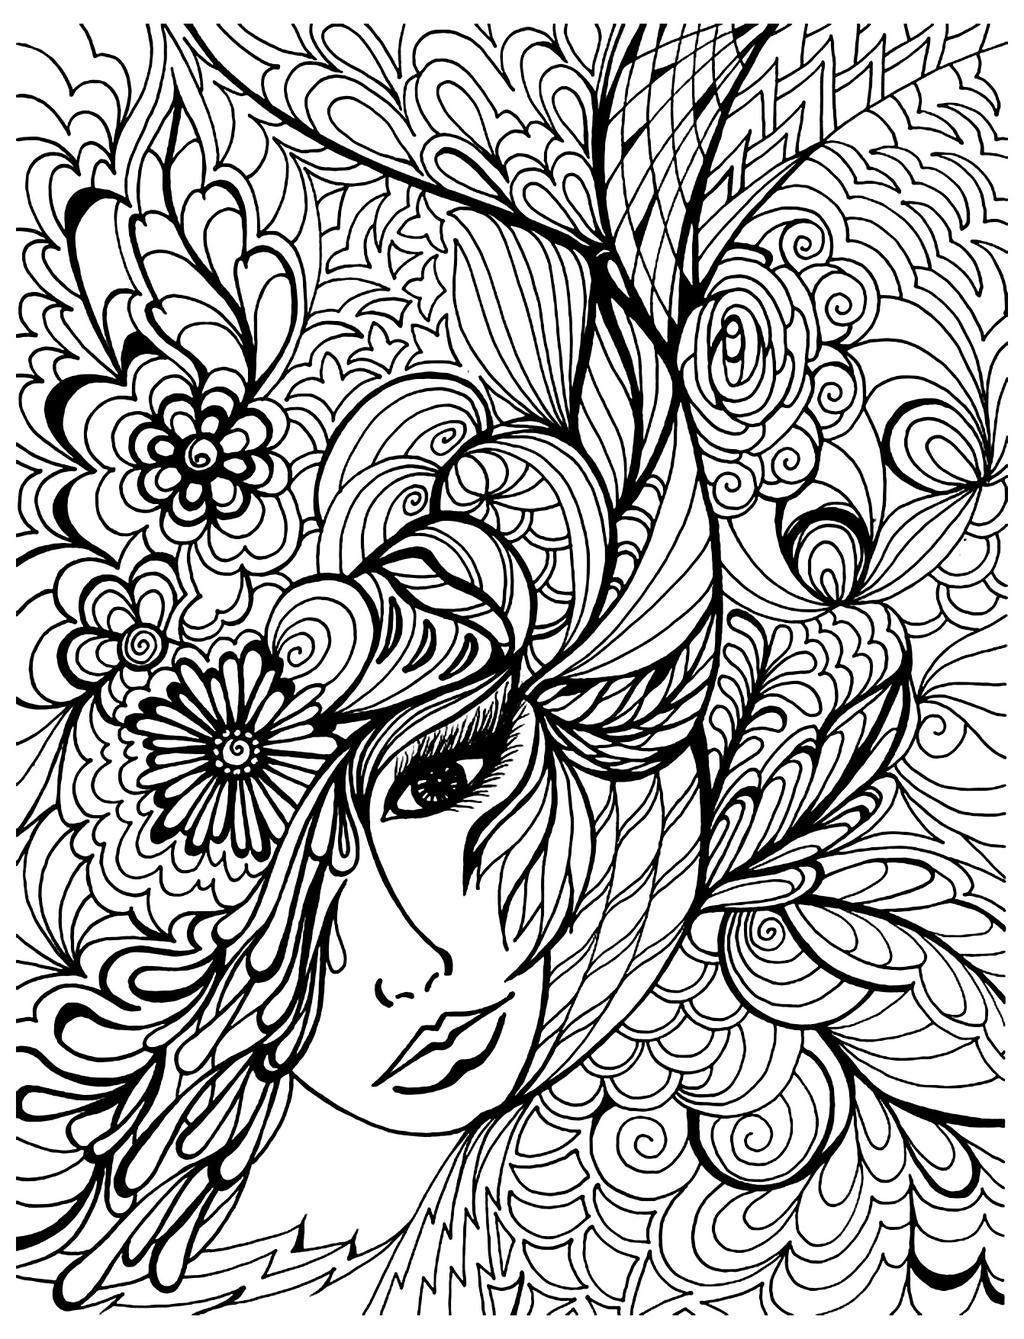 Relaxation Coloring Pages Pdf Andrew Free Printable Coloring Pages